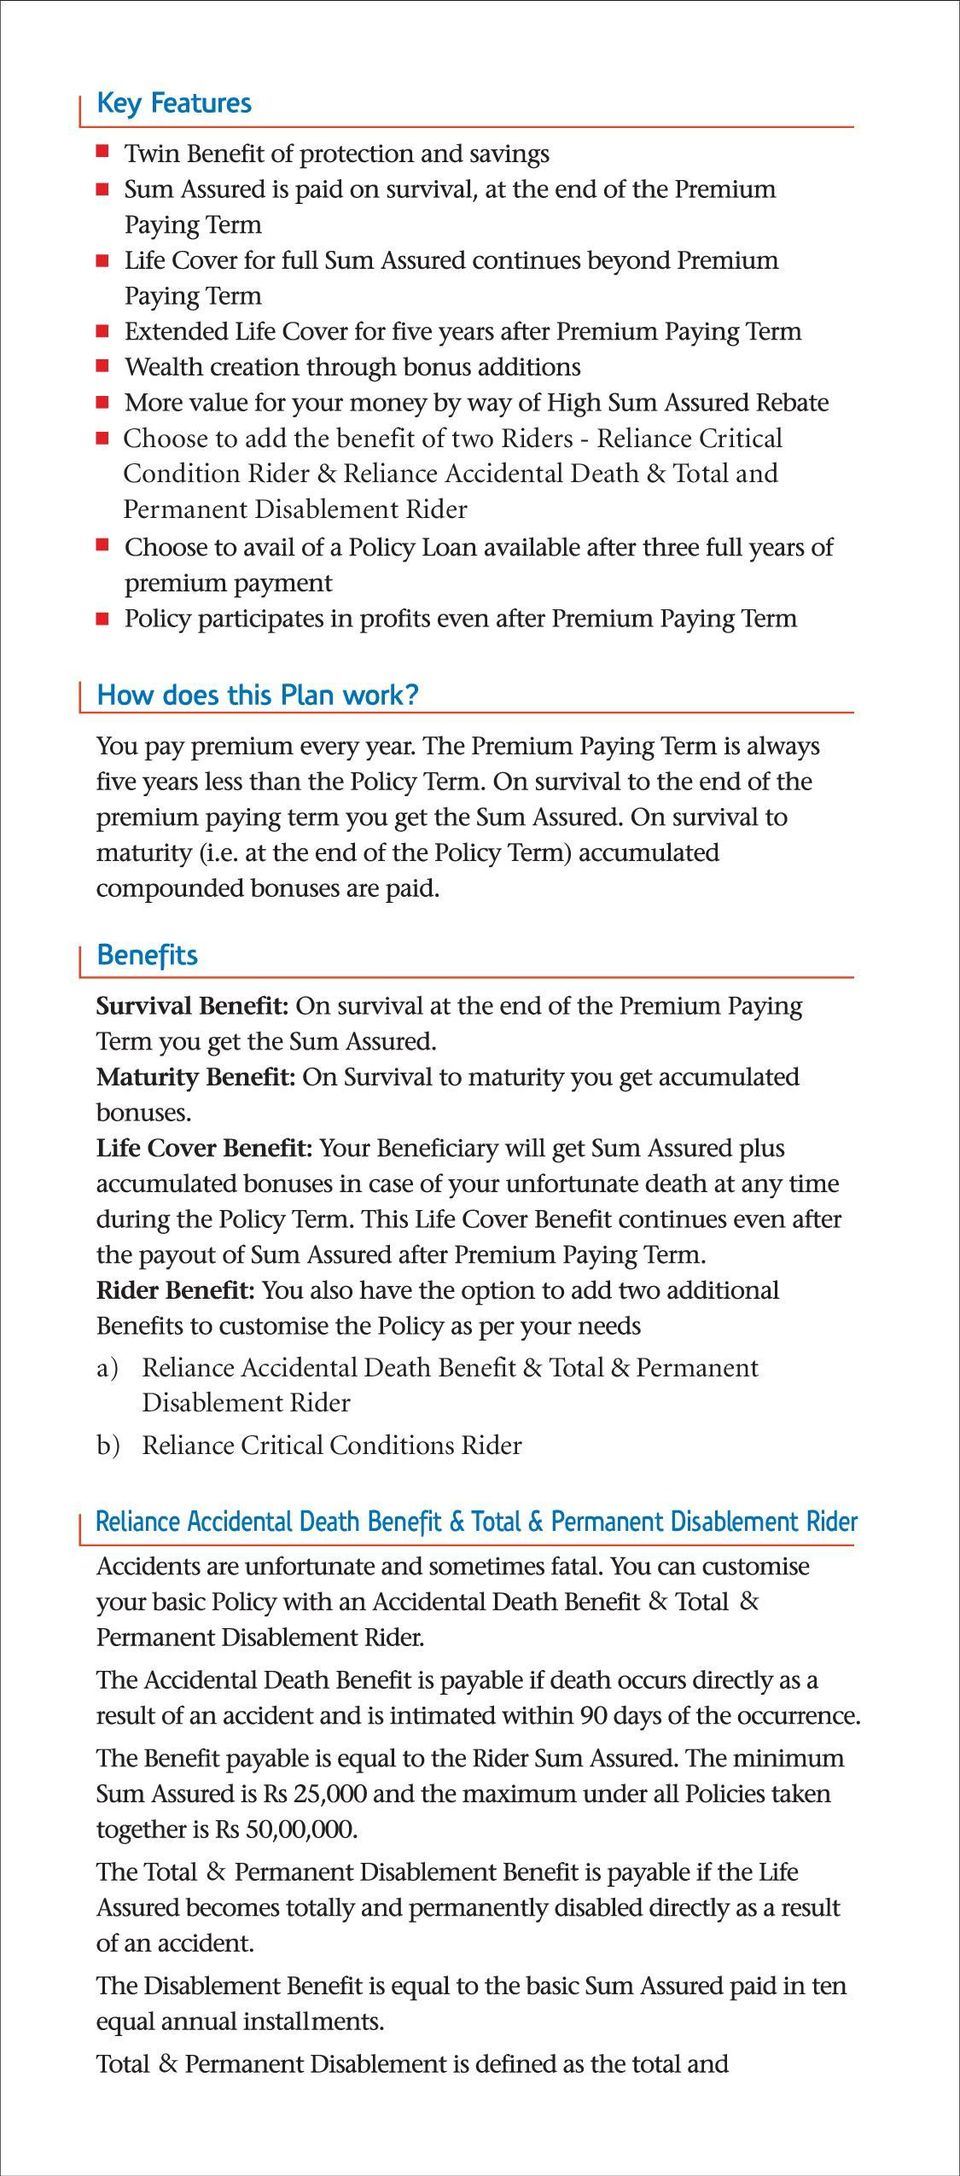 Accidental Death Benefit & Total & Permanent Disablement Rider b) Reliance Critical